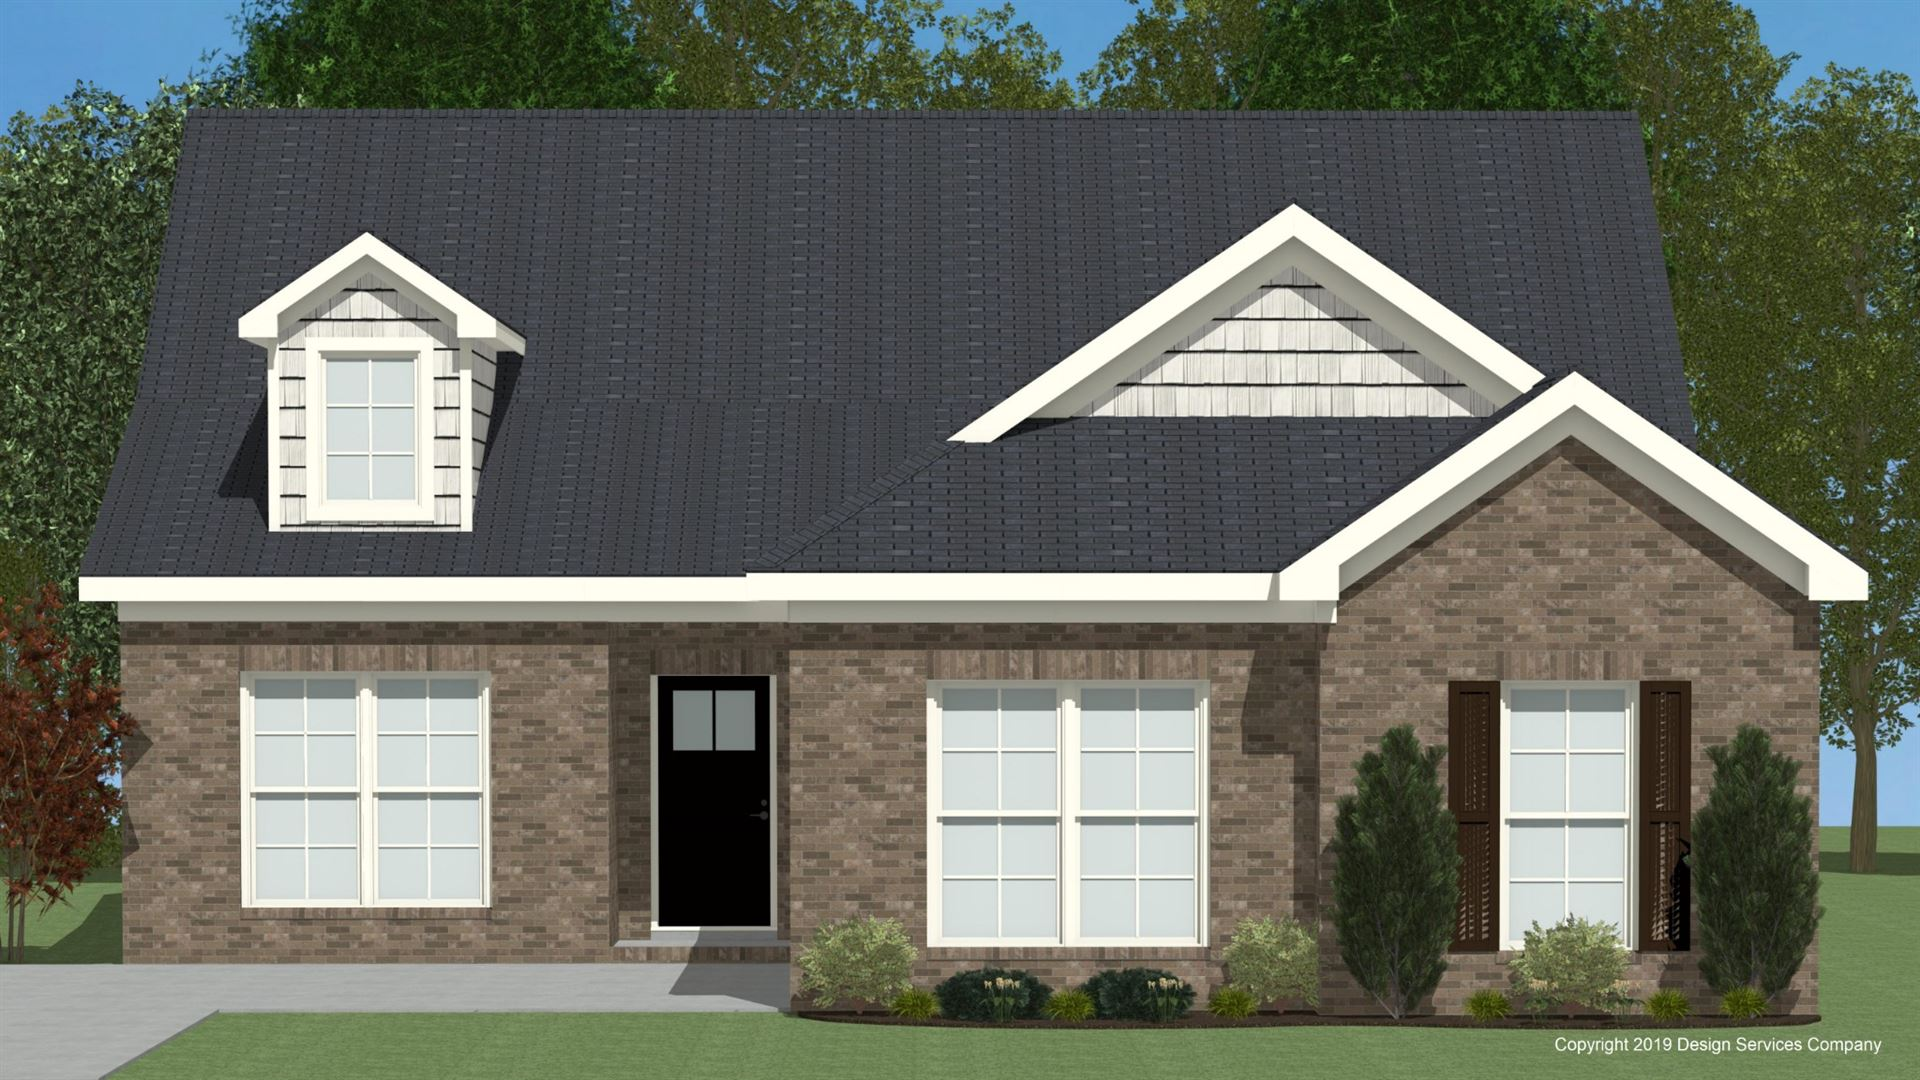 Photo of 6412 Armstrong Dr, Hermitage, TN 37076 (MLS # 2229402)